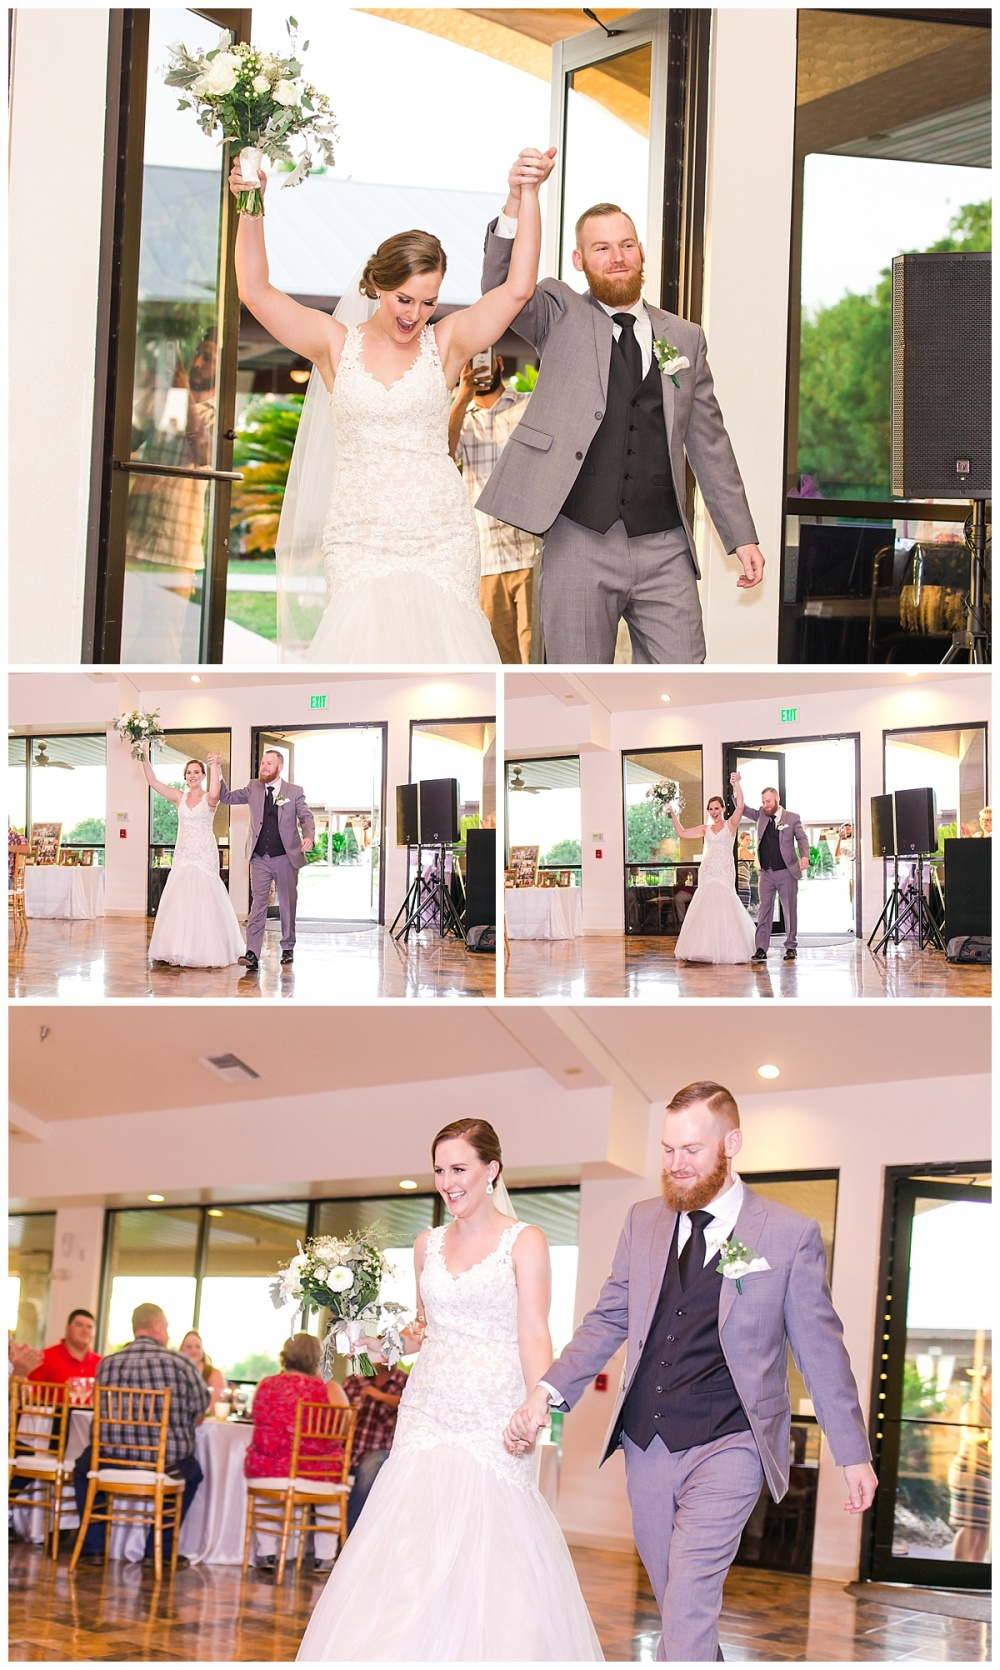 Carly-Barton-Photography-Wedding-Photos-Granberry-Hills-Event-Facility-Ryan-Chelsea-San-Antonio-Texas_0068.jpg